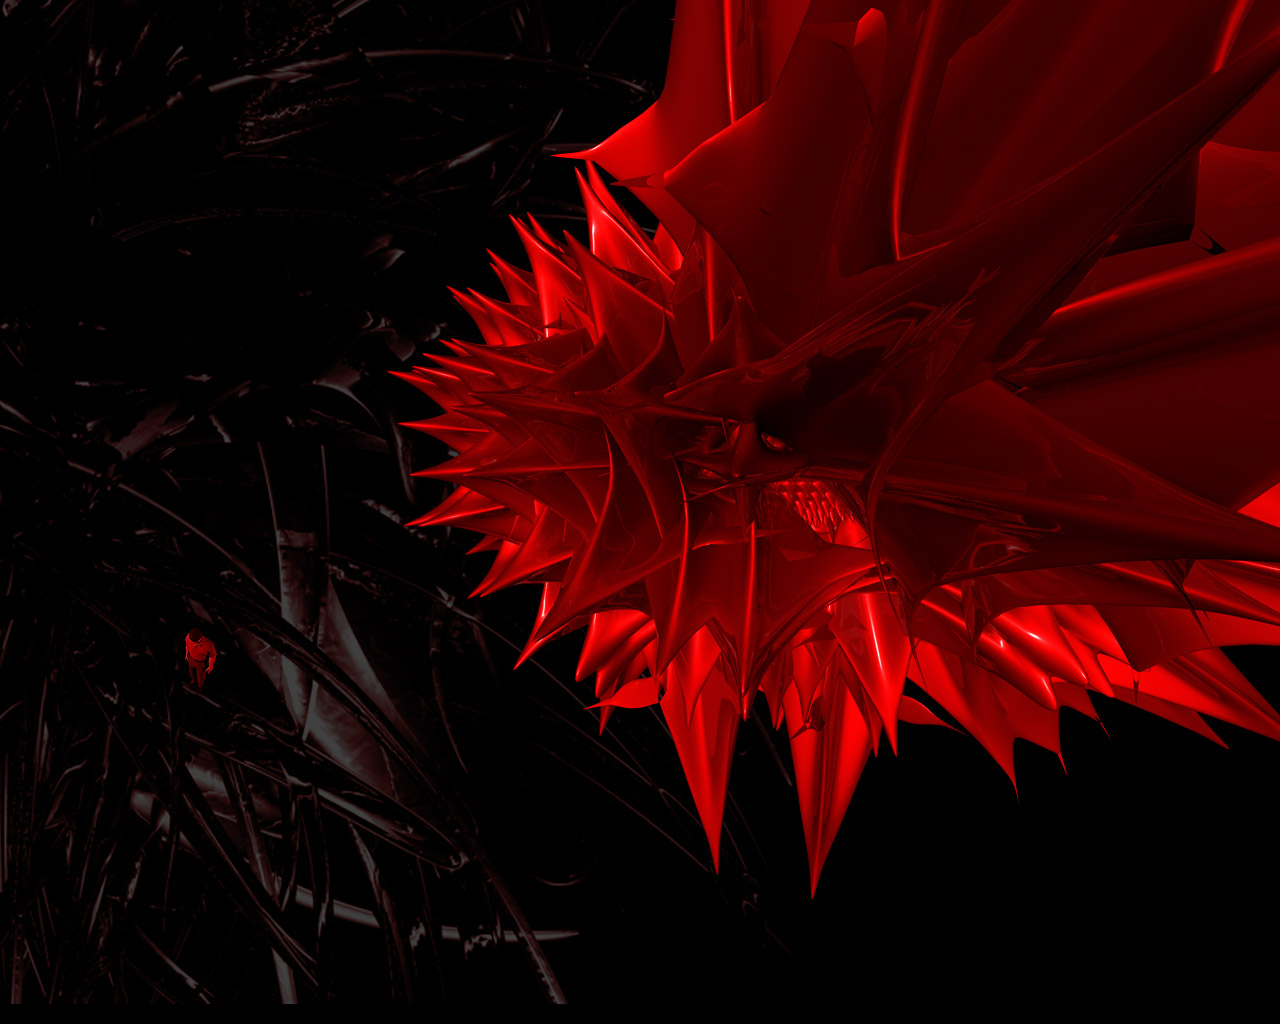 Red and black wallpapers 1 desktop background - Cool red and black wallpapers ...